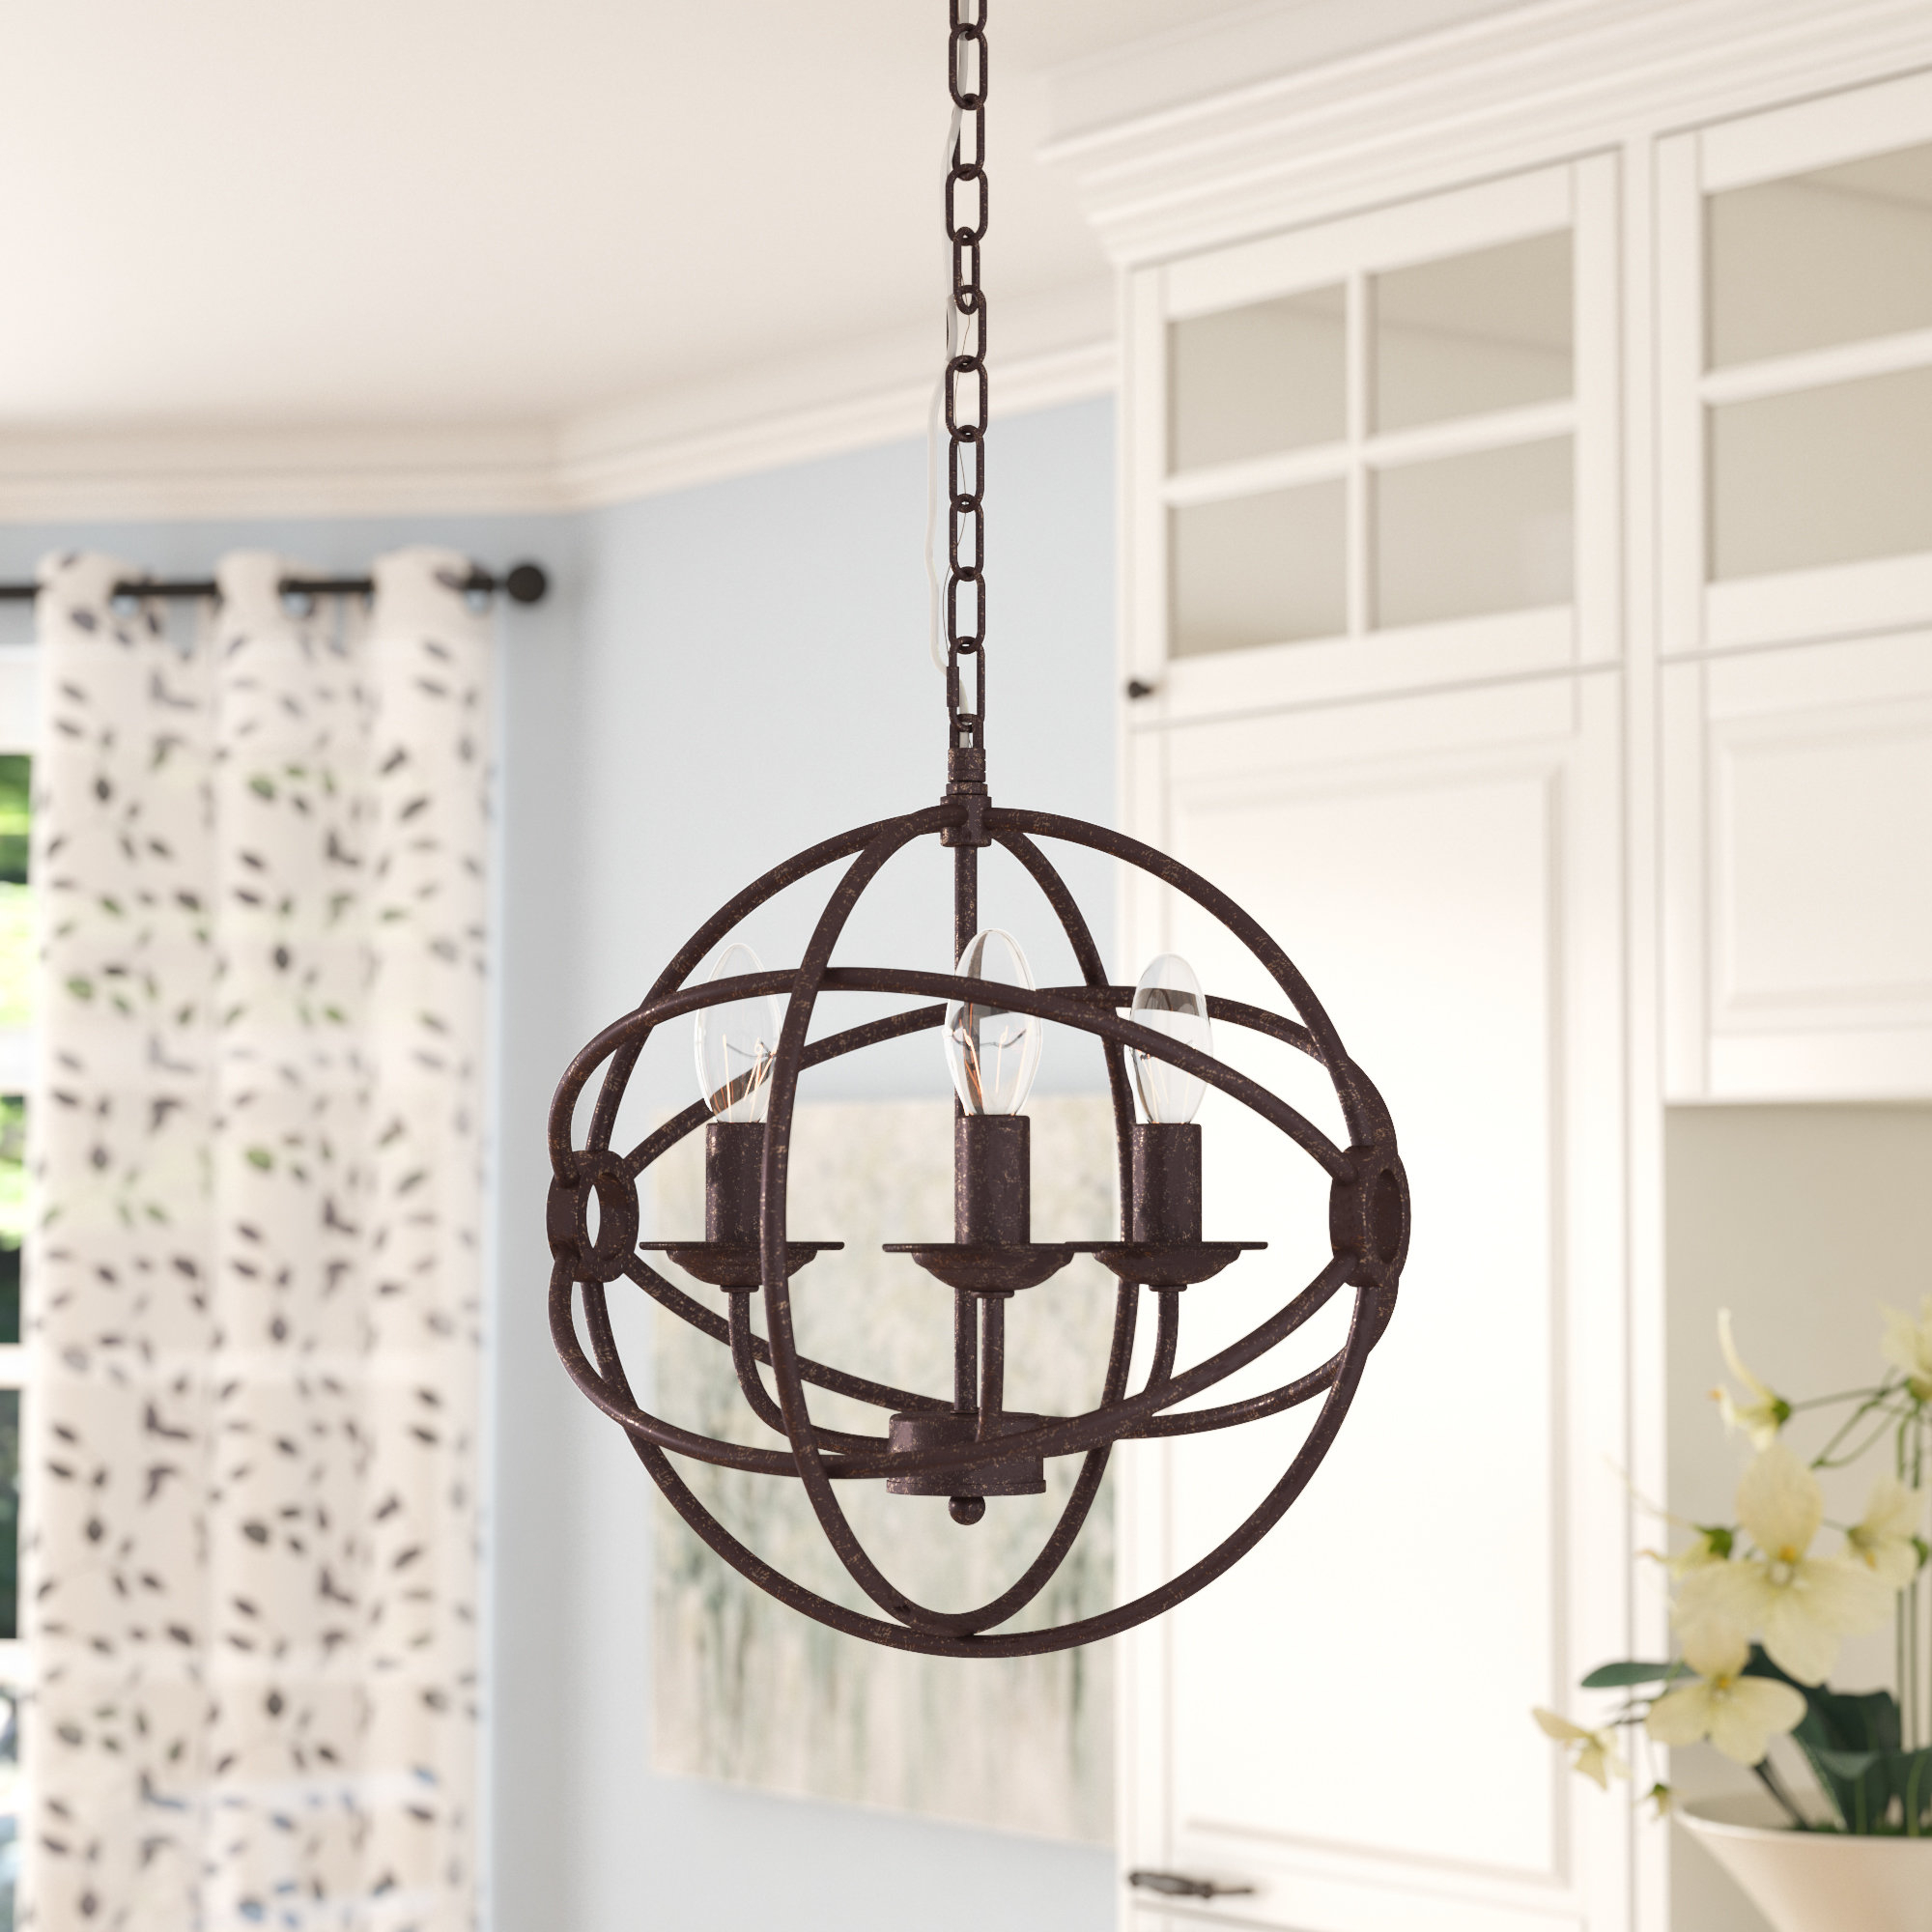 [%globe Chandeliers Sale – Up To 65% Off Until September 30th With Well Known Filipe Globe Chandeliers|filipe Globe Chandeliers Intended For Newest Globe Chandeliers Sale – Up To 65% Off Until September 30th|well Liked Filipe Globe Chandeliers Regarding Globe Chandeliers Sale – Up To 65% Off Until September 30th|most Recently Released Globe Chandeliers Sale – Up To 65% Off Until September 30th In Filipe Globe Chandeliers%] (View 7 of 20)